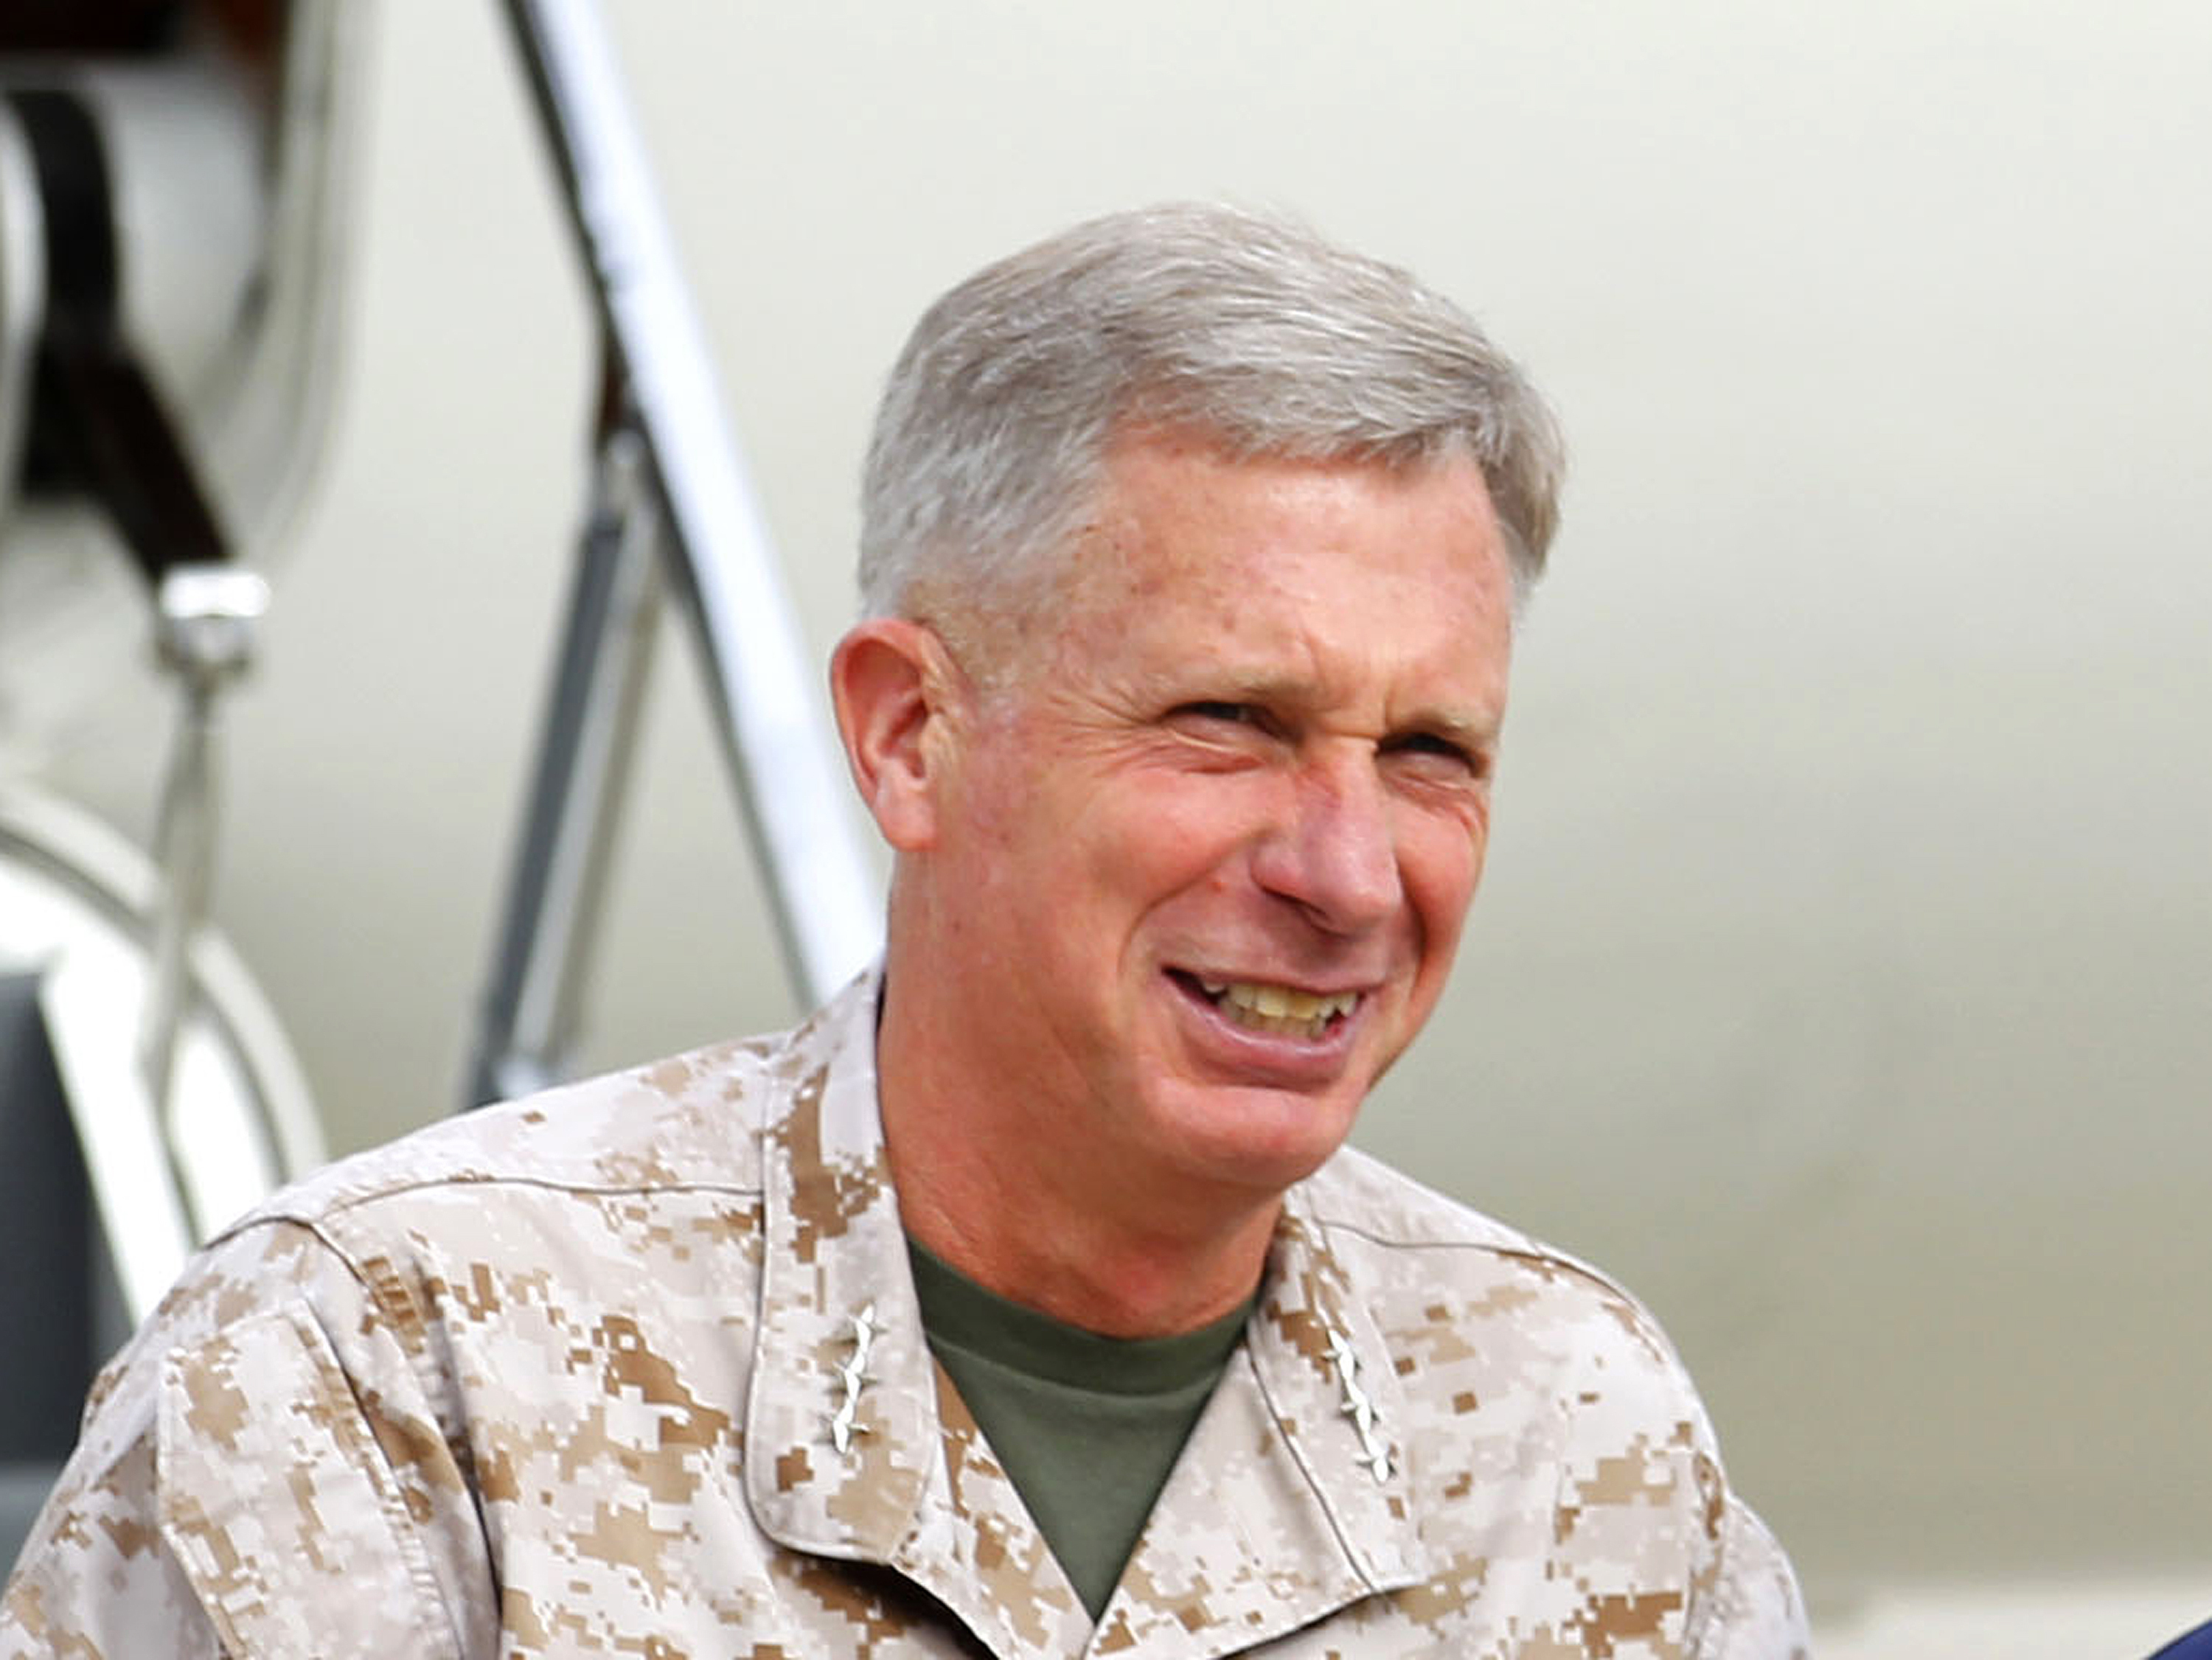 FILE - Marine Gen. Thomas Waldhauser is seen at Camp Pendleton, Calif., March 30, 2012. Last week in Washington, Waldhauser, the head of U.S. Africa Command, talked to lawmakers on the Senate Armed Services Committee